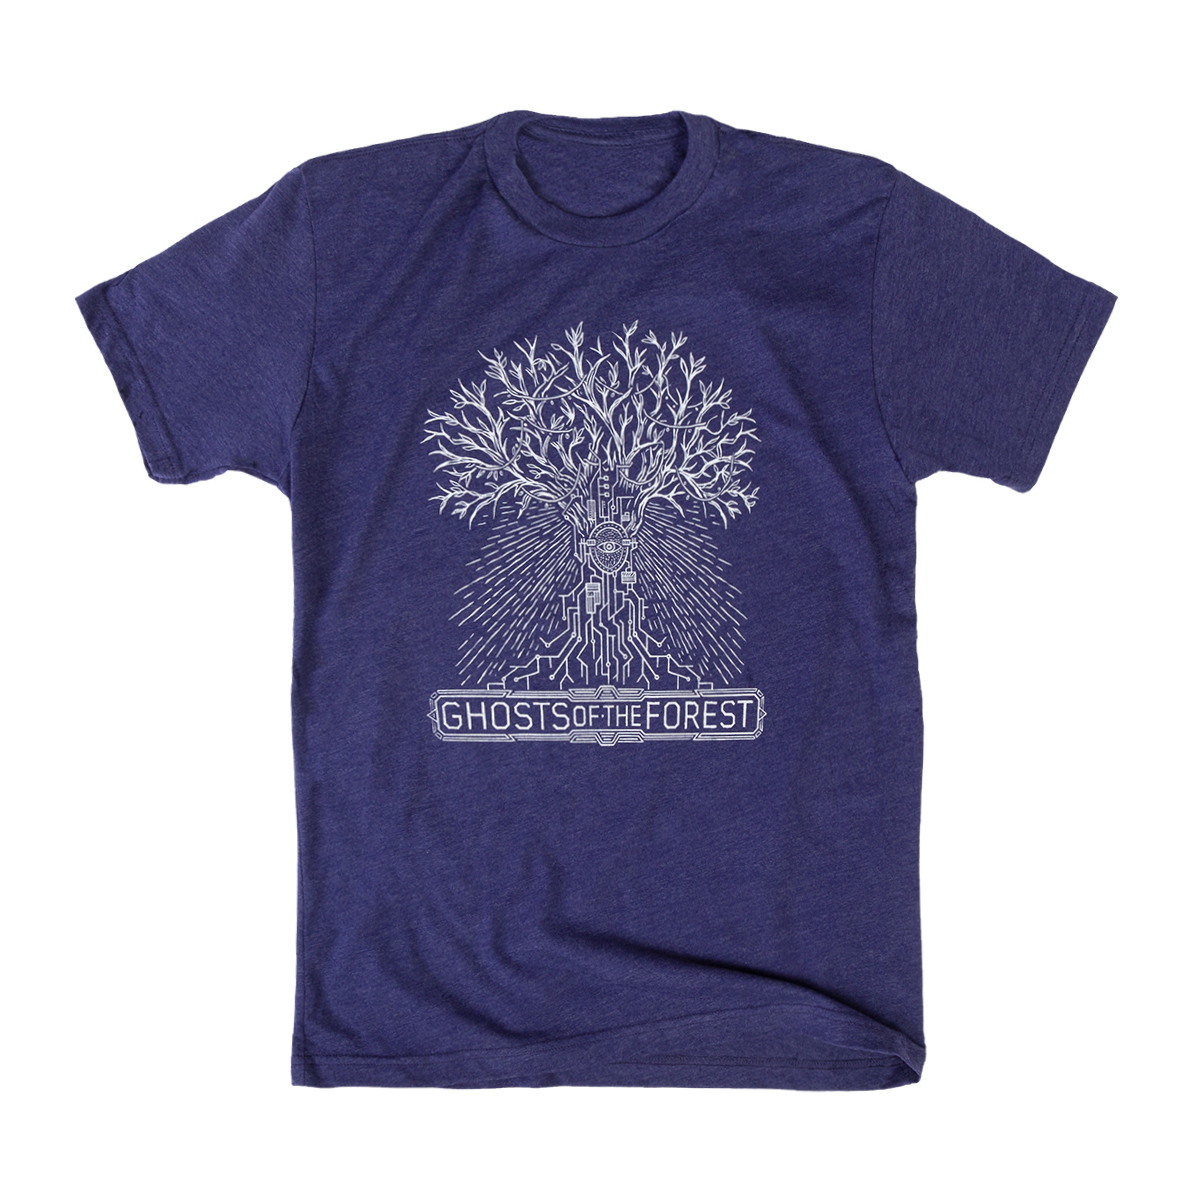 Ghosts of the Forest Circuitree Tour Tee